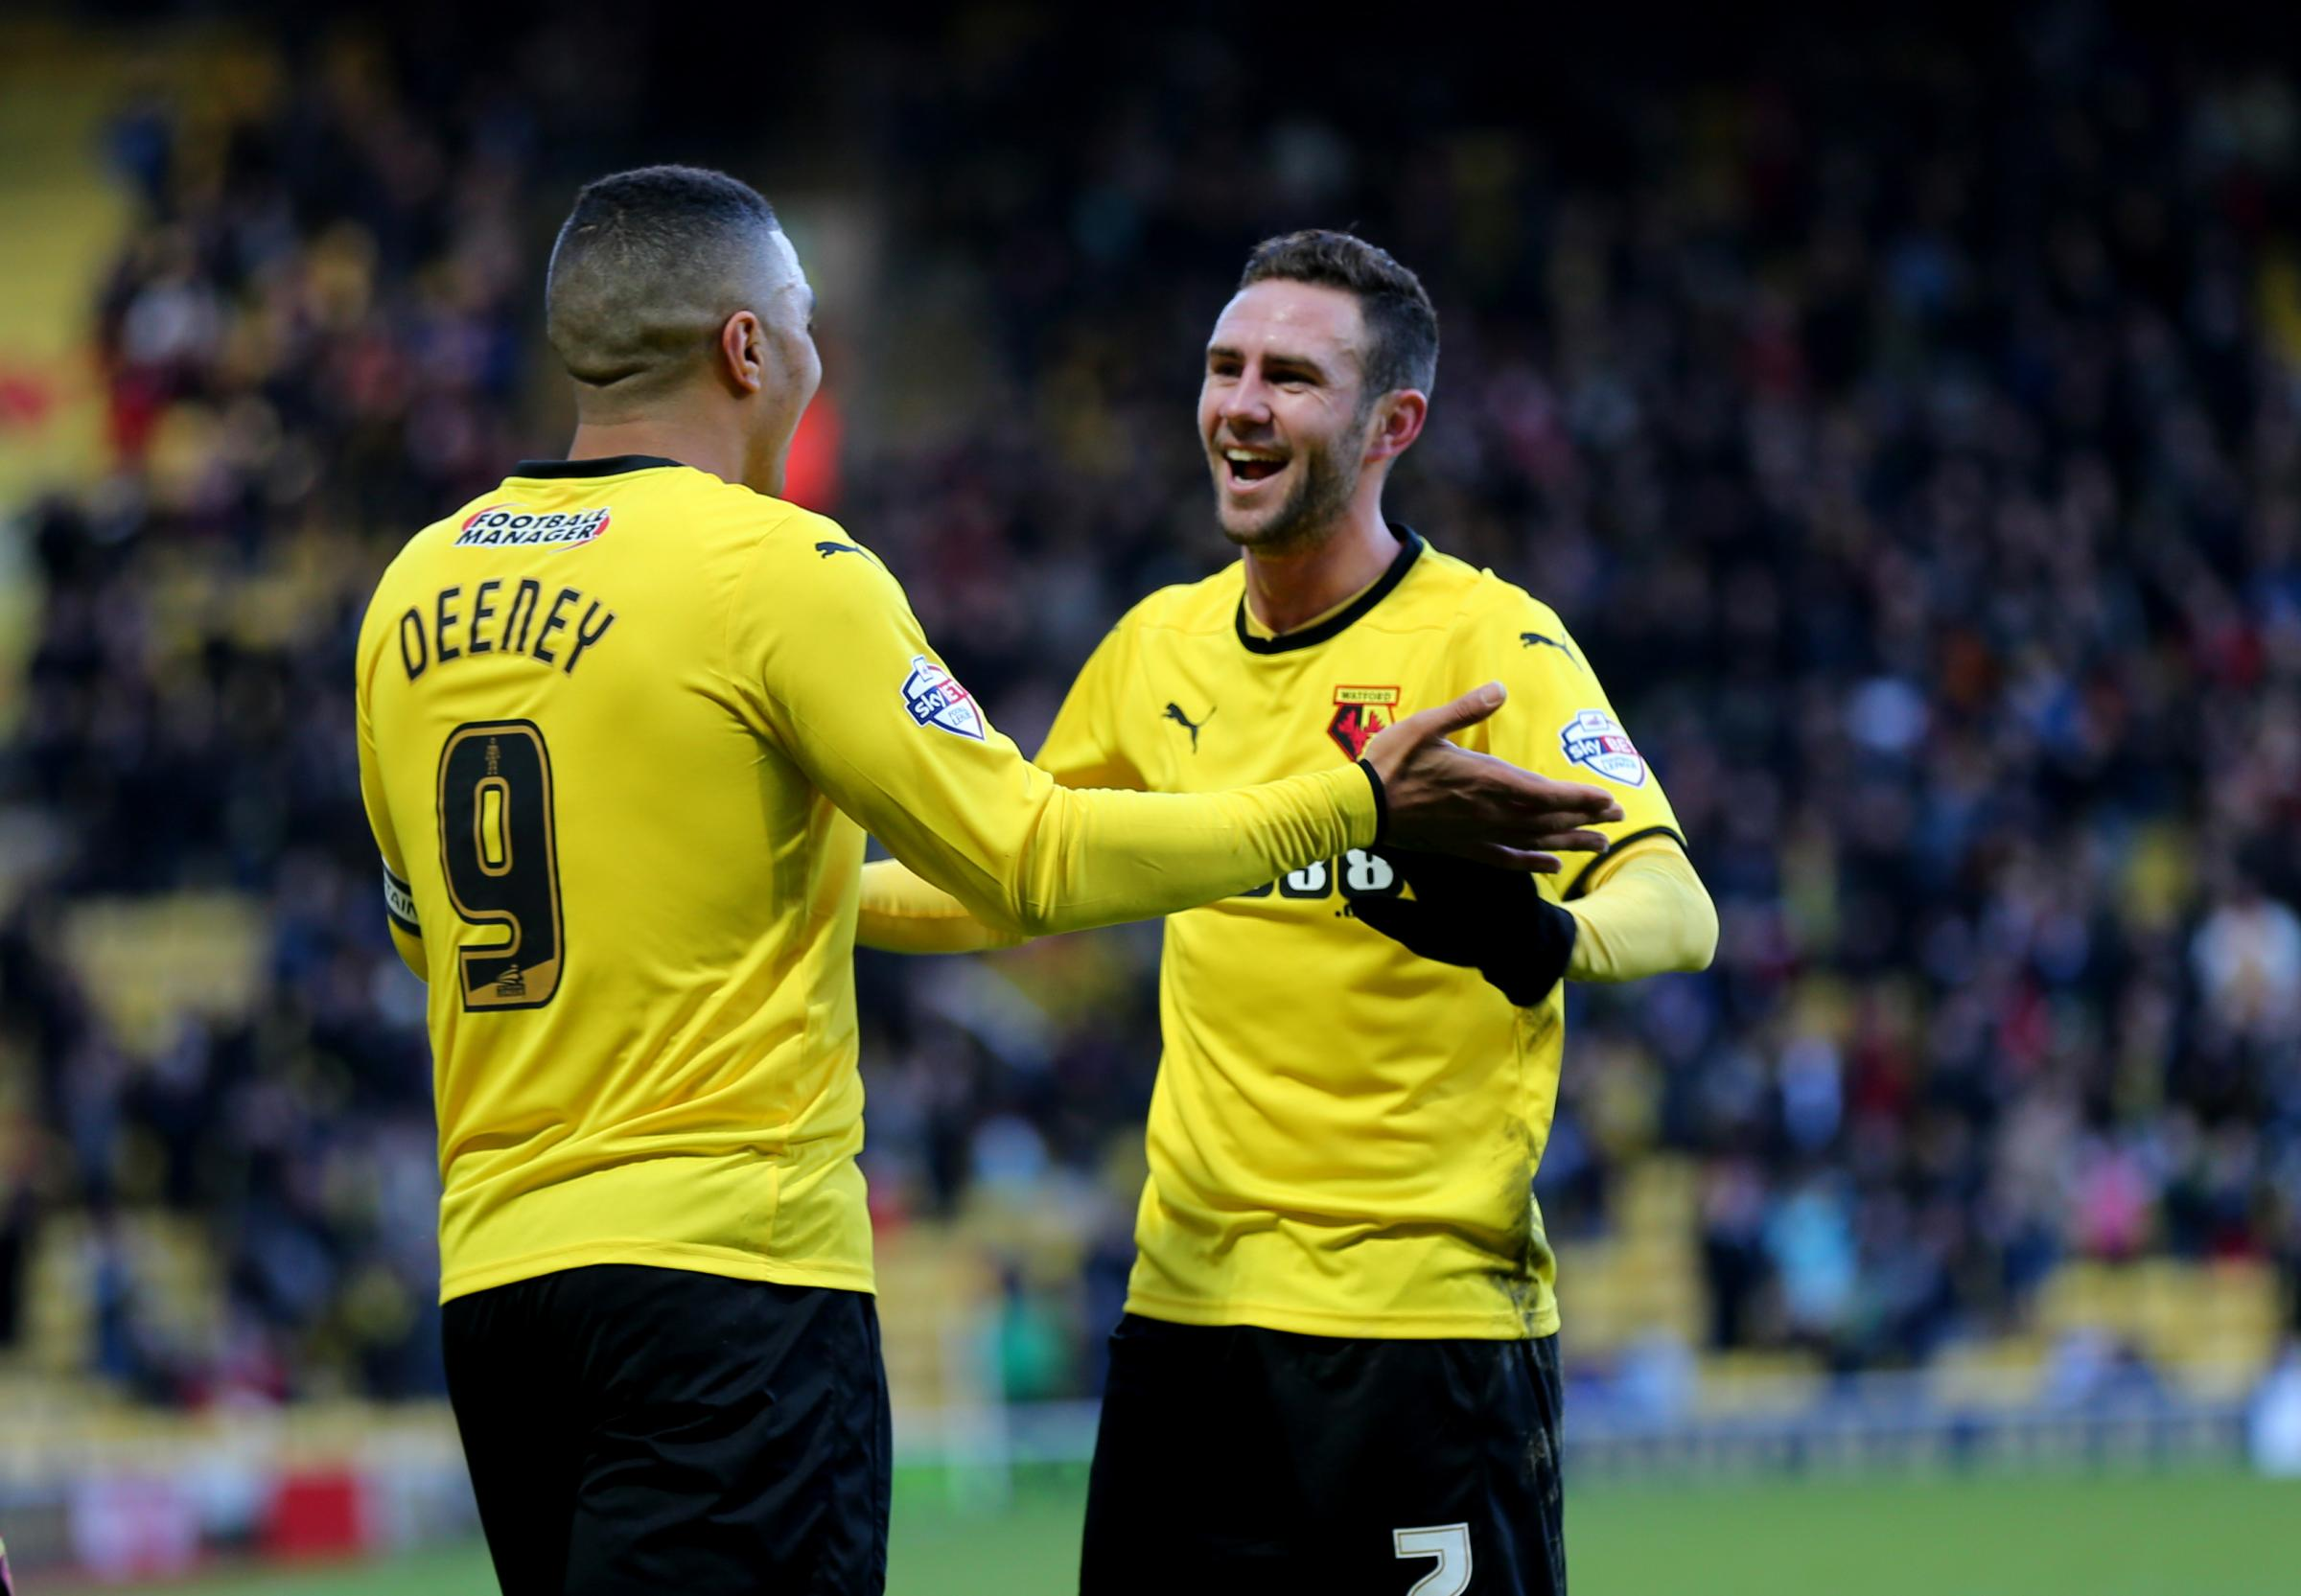 Layun (right) celebrates Troy Deeney's goal against Charlton Athletic on Saturday. Pictures: Holly Cant